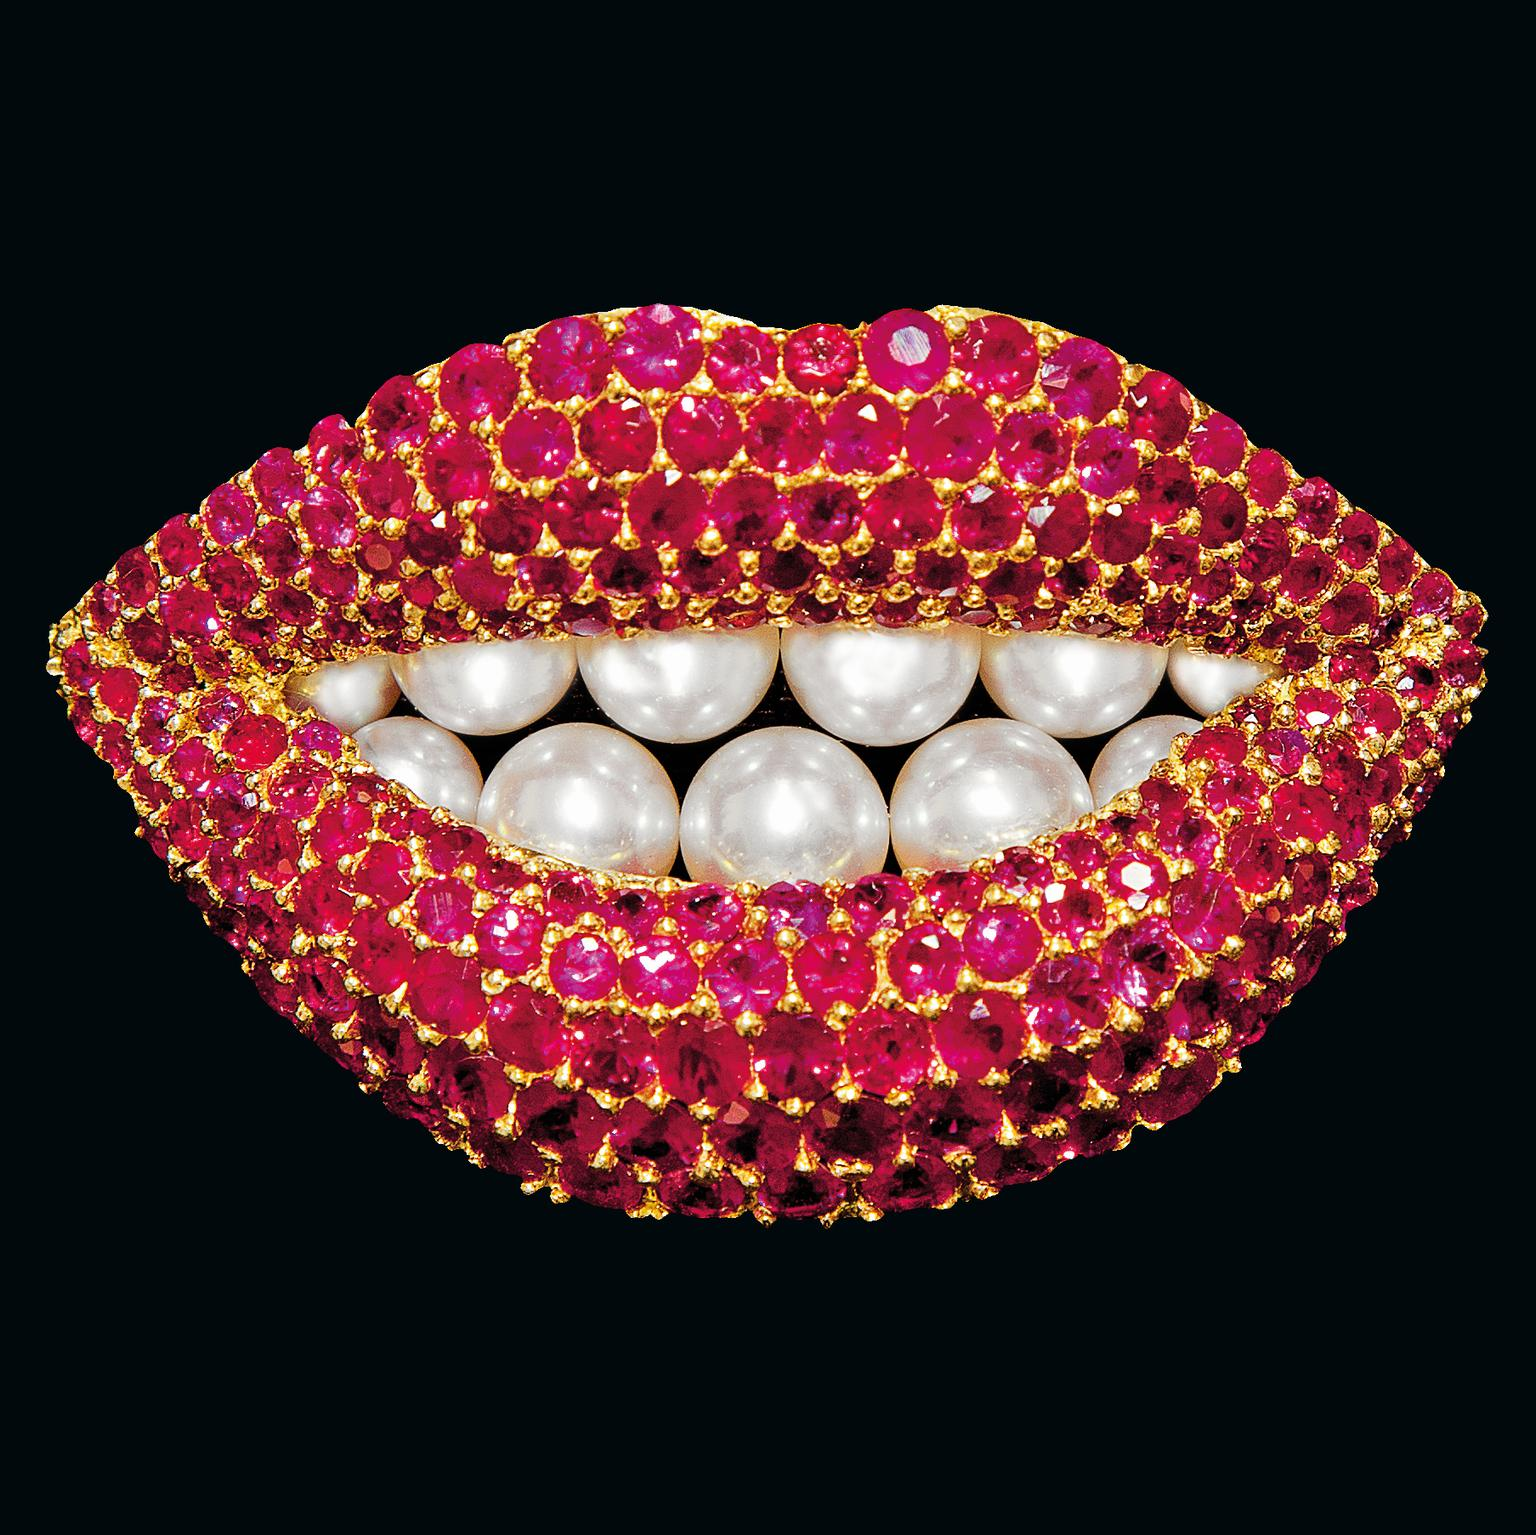 Lips brooch from Salvador Dalí